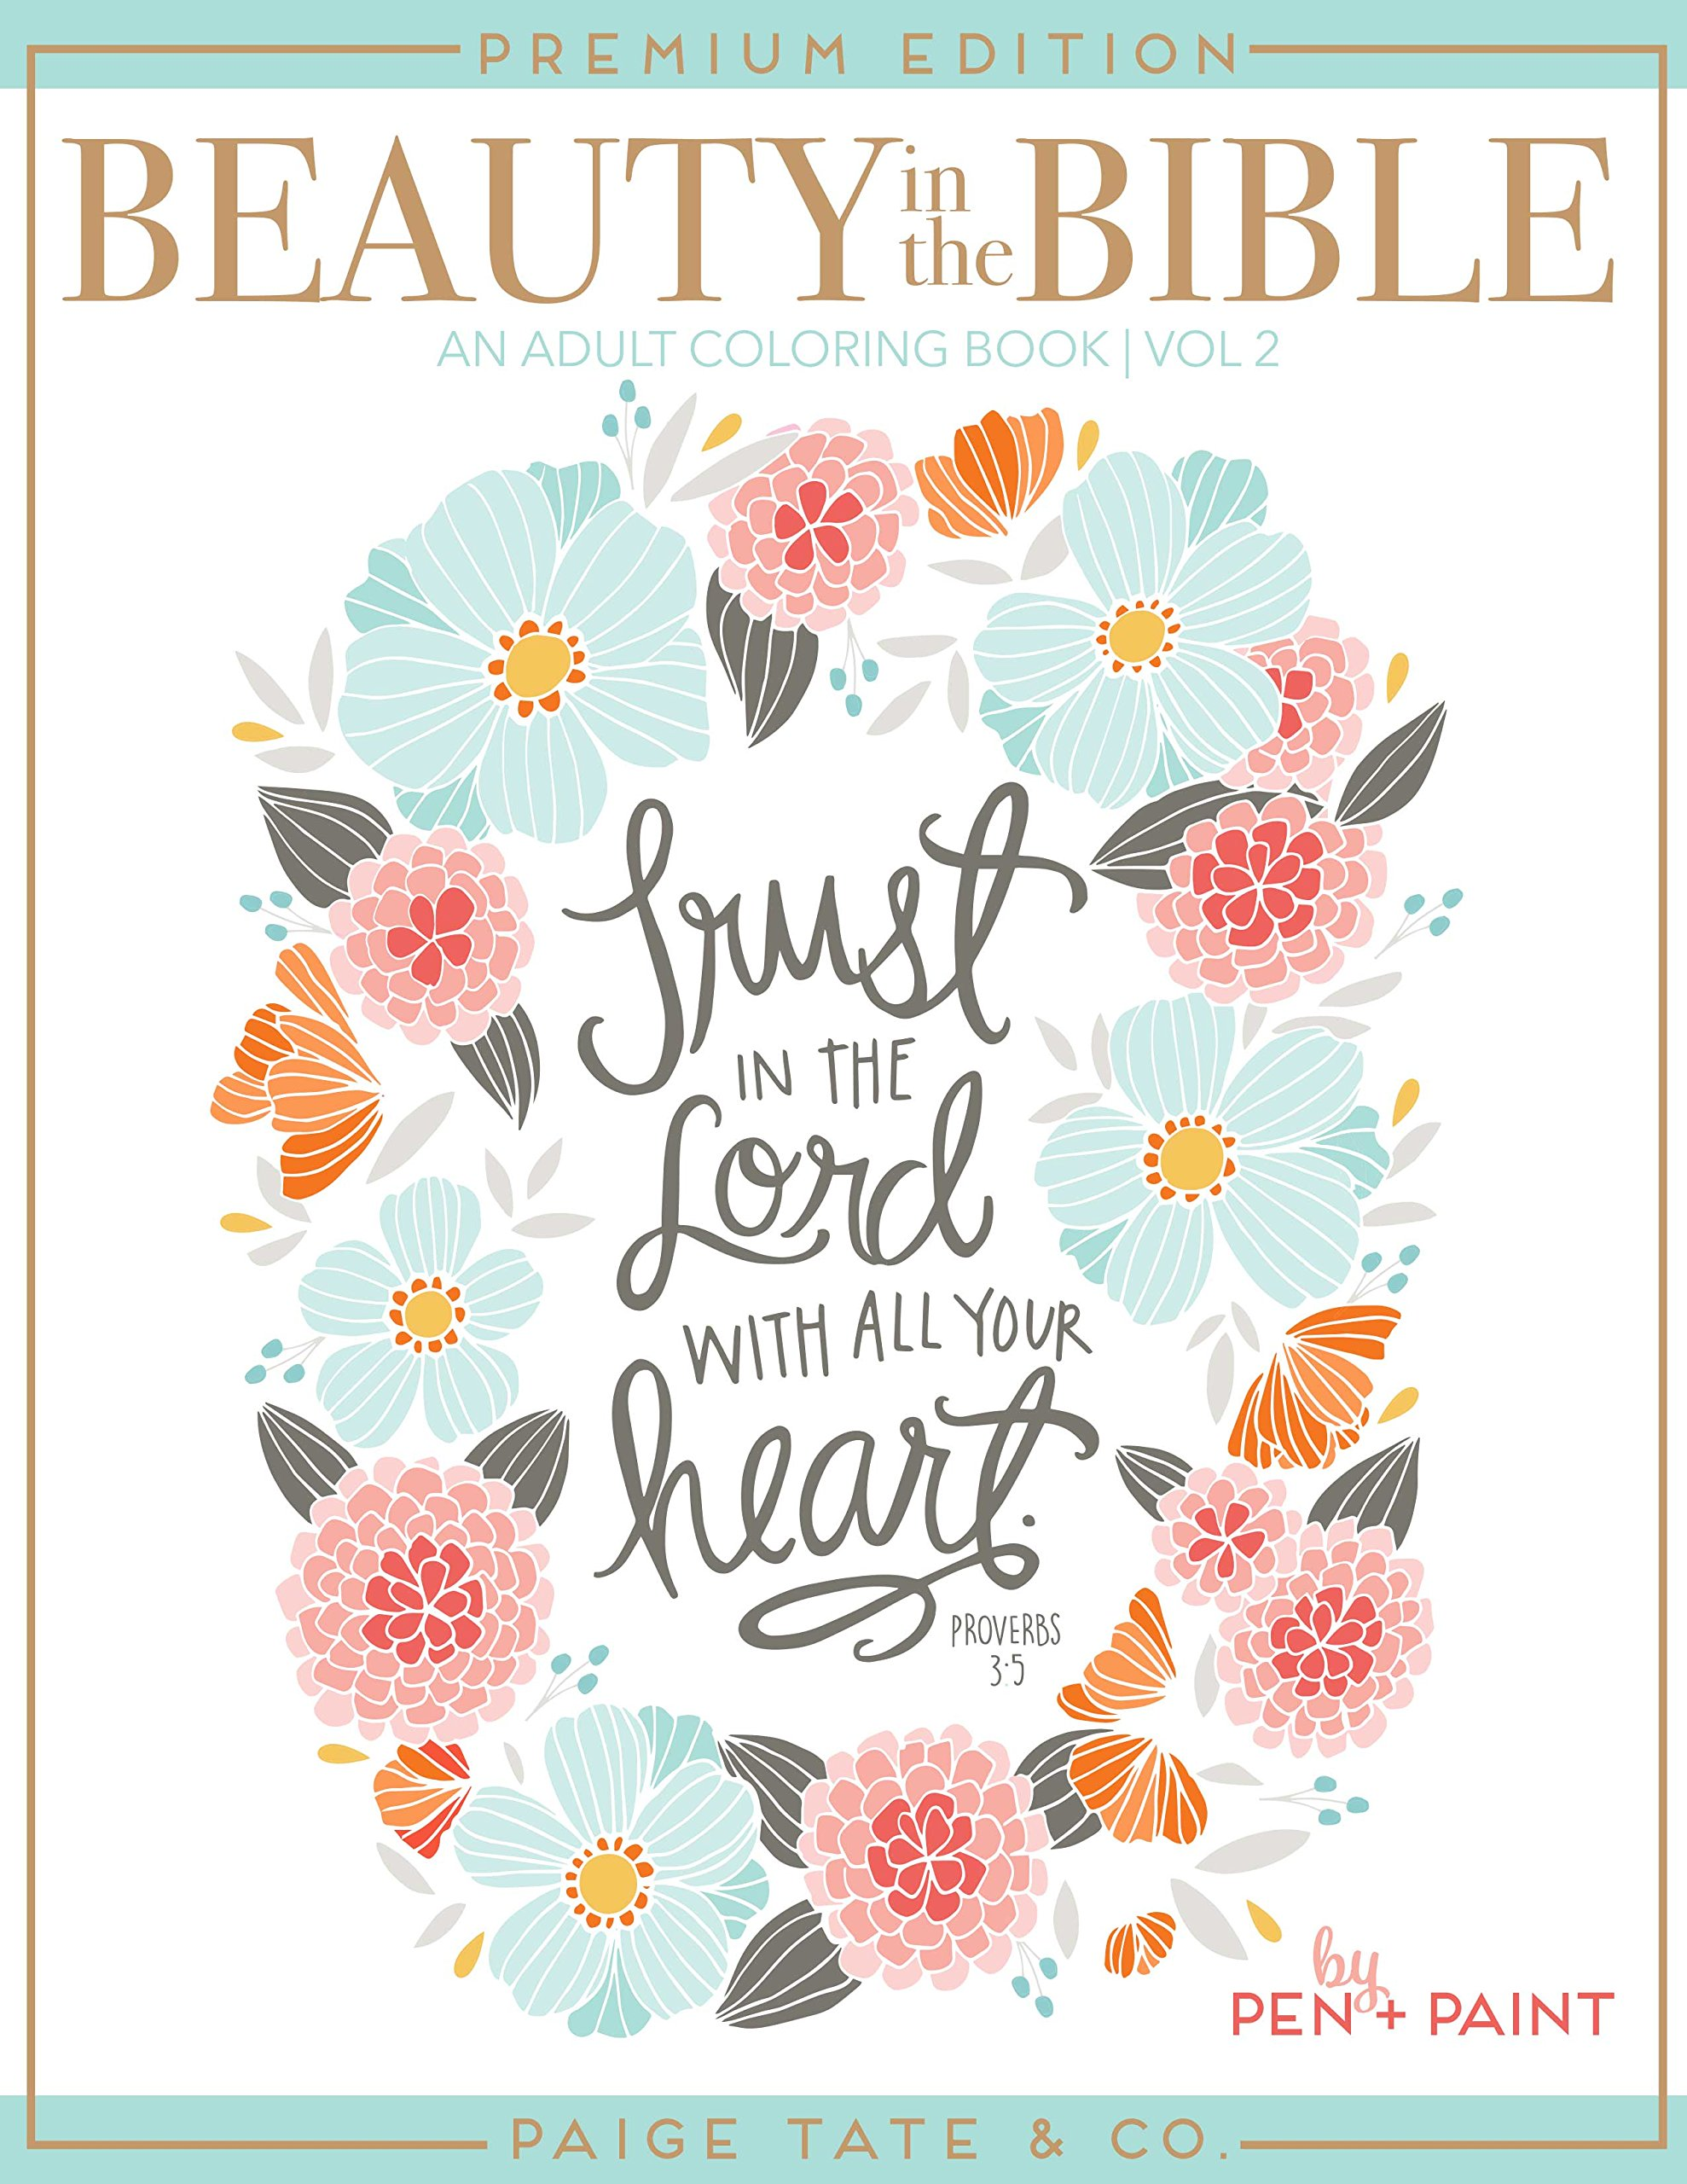 Amazon.com: Beauty in the Bible: Adult Coloring Book Volume 2 ...